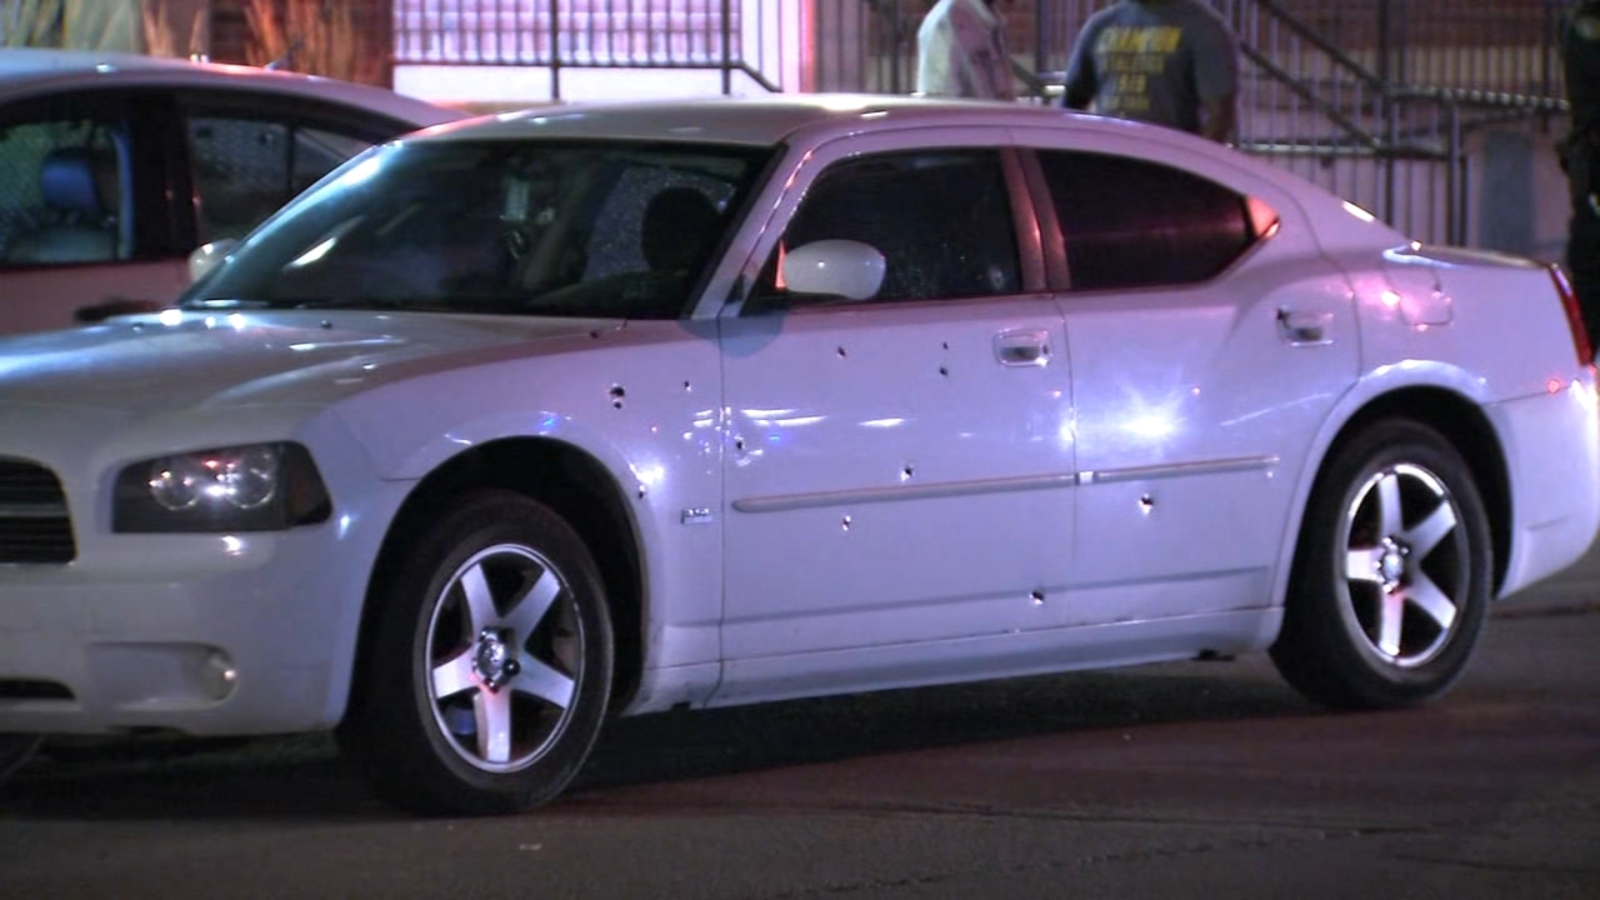 1 wounded in Bishop Ford shooting in Dolton, SB lanes reopen